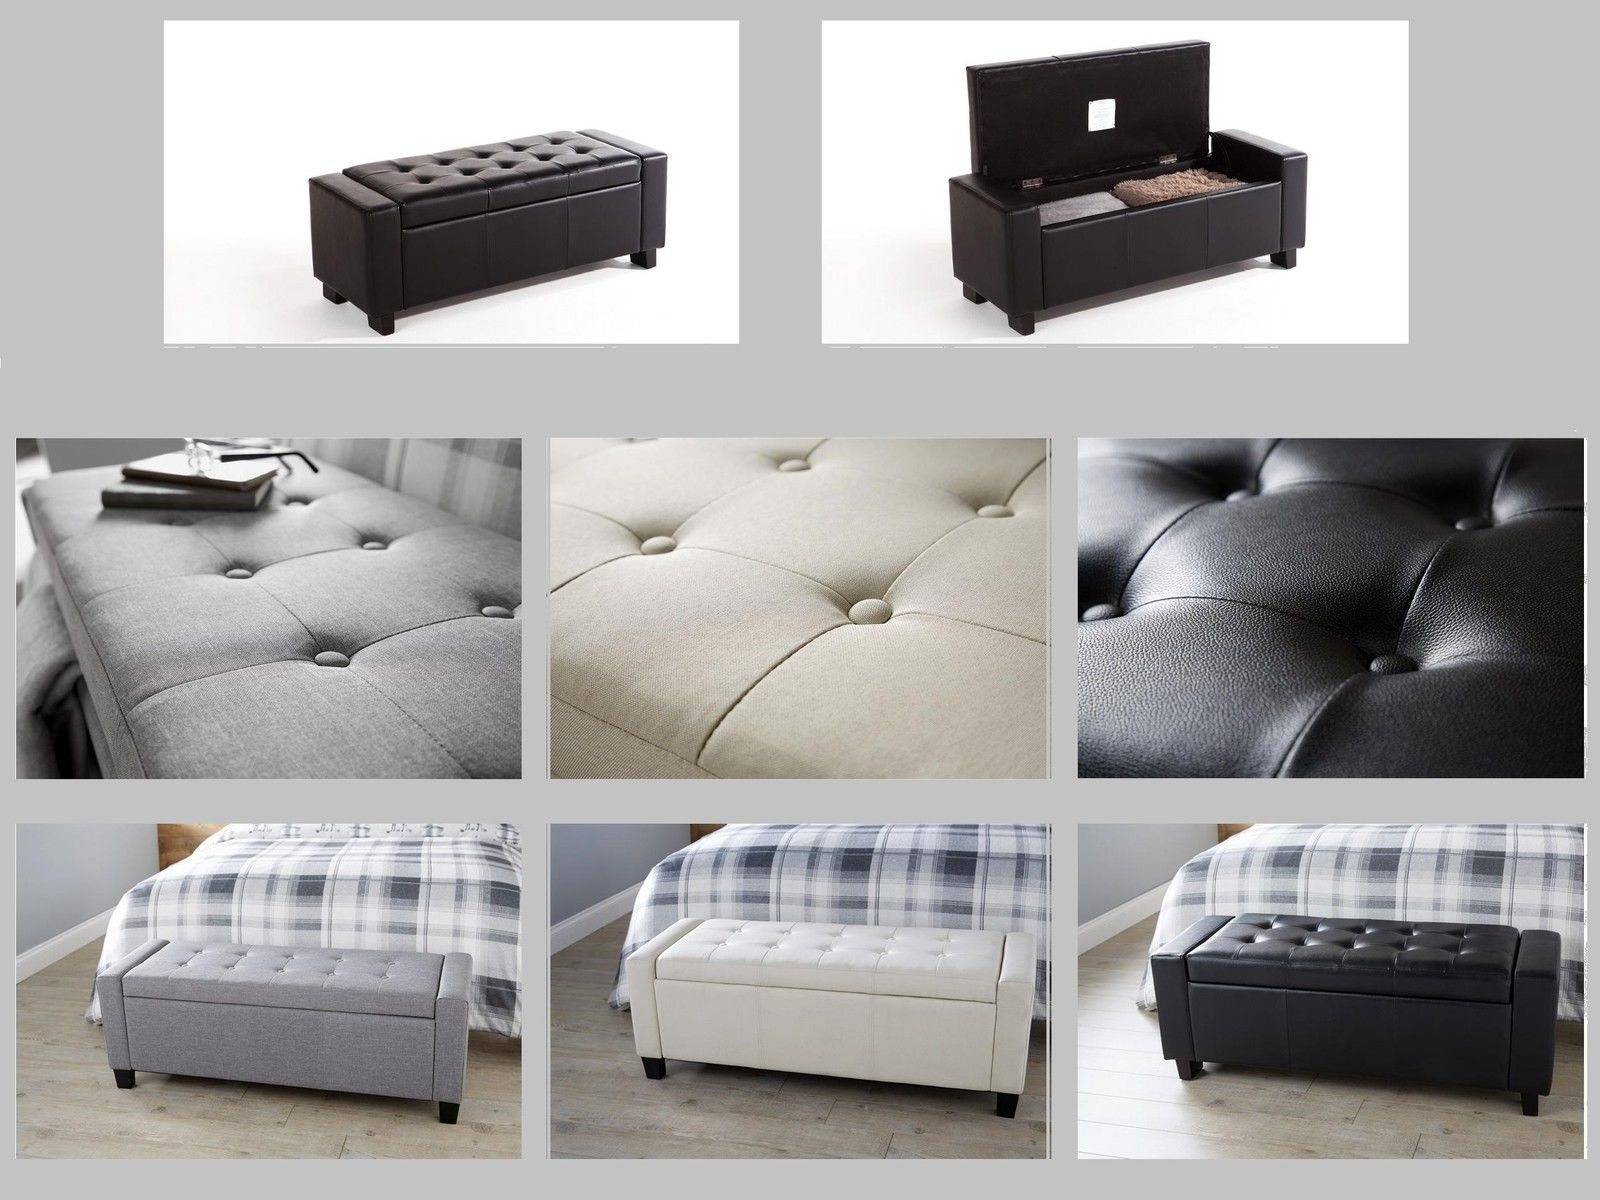 Ottoman Storage Bench Bedding Blanket Box Fabric Or Faux